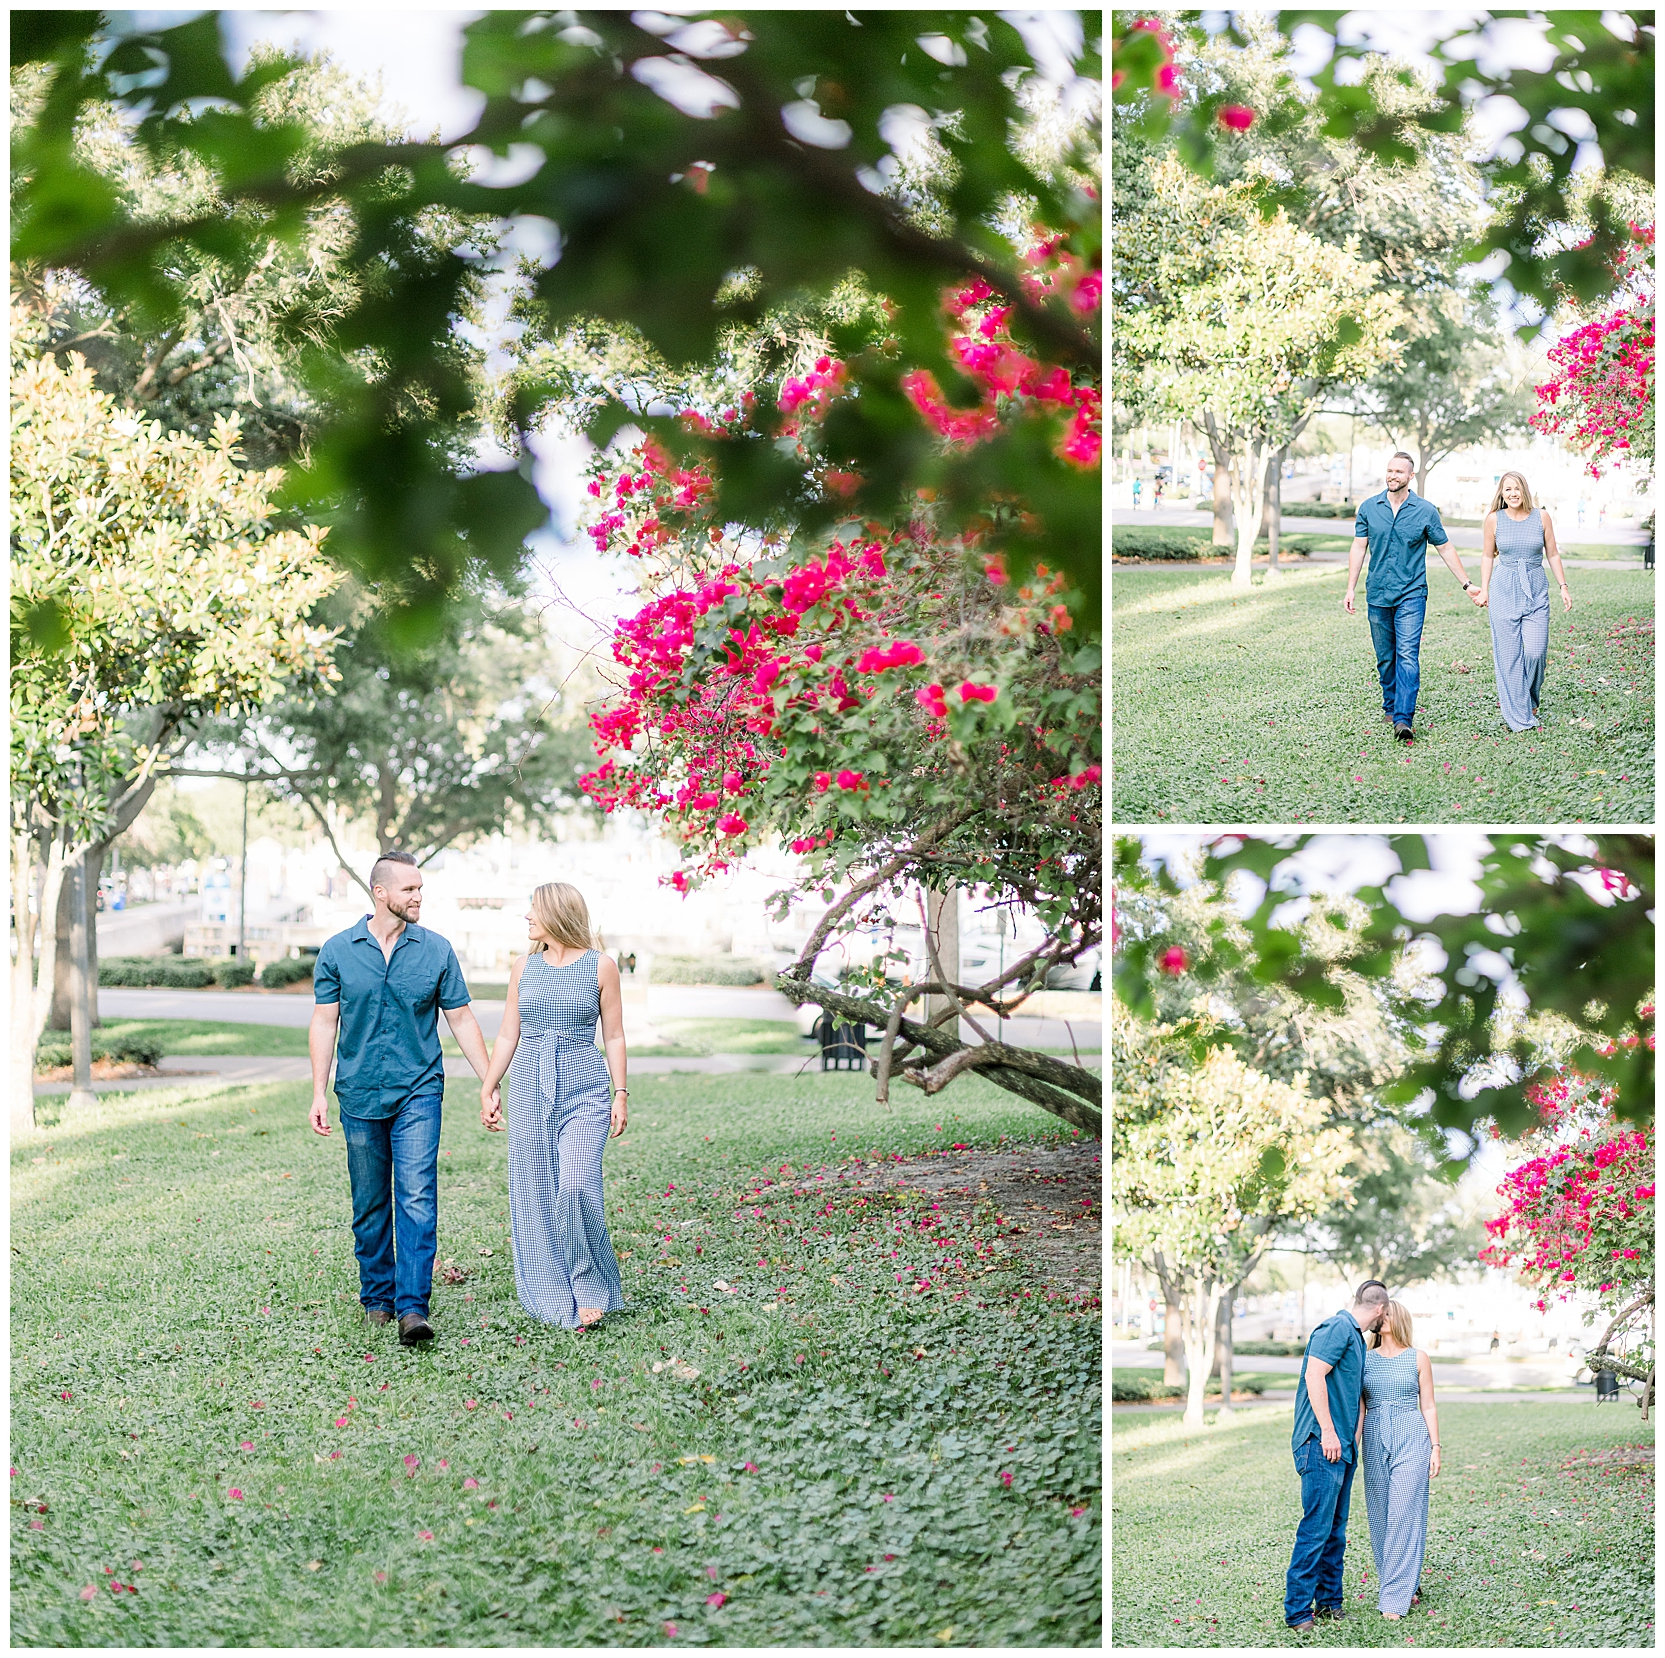 jessicafredericks_st petersburg_wedding_photographer_dtsp_anniversary_dali_north shore13.jpg